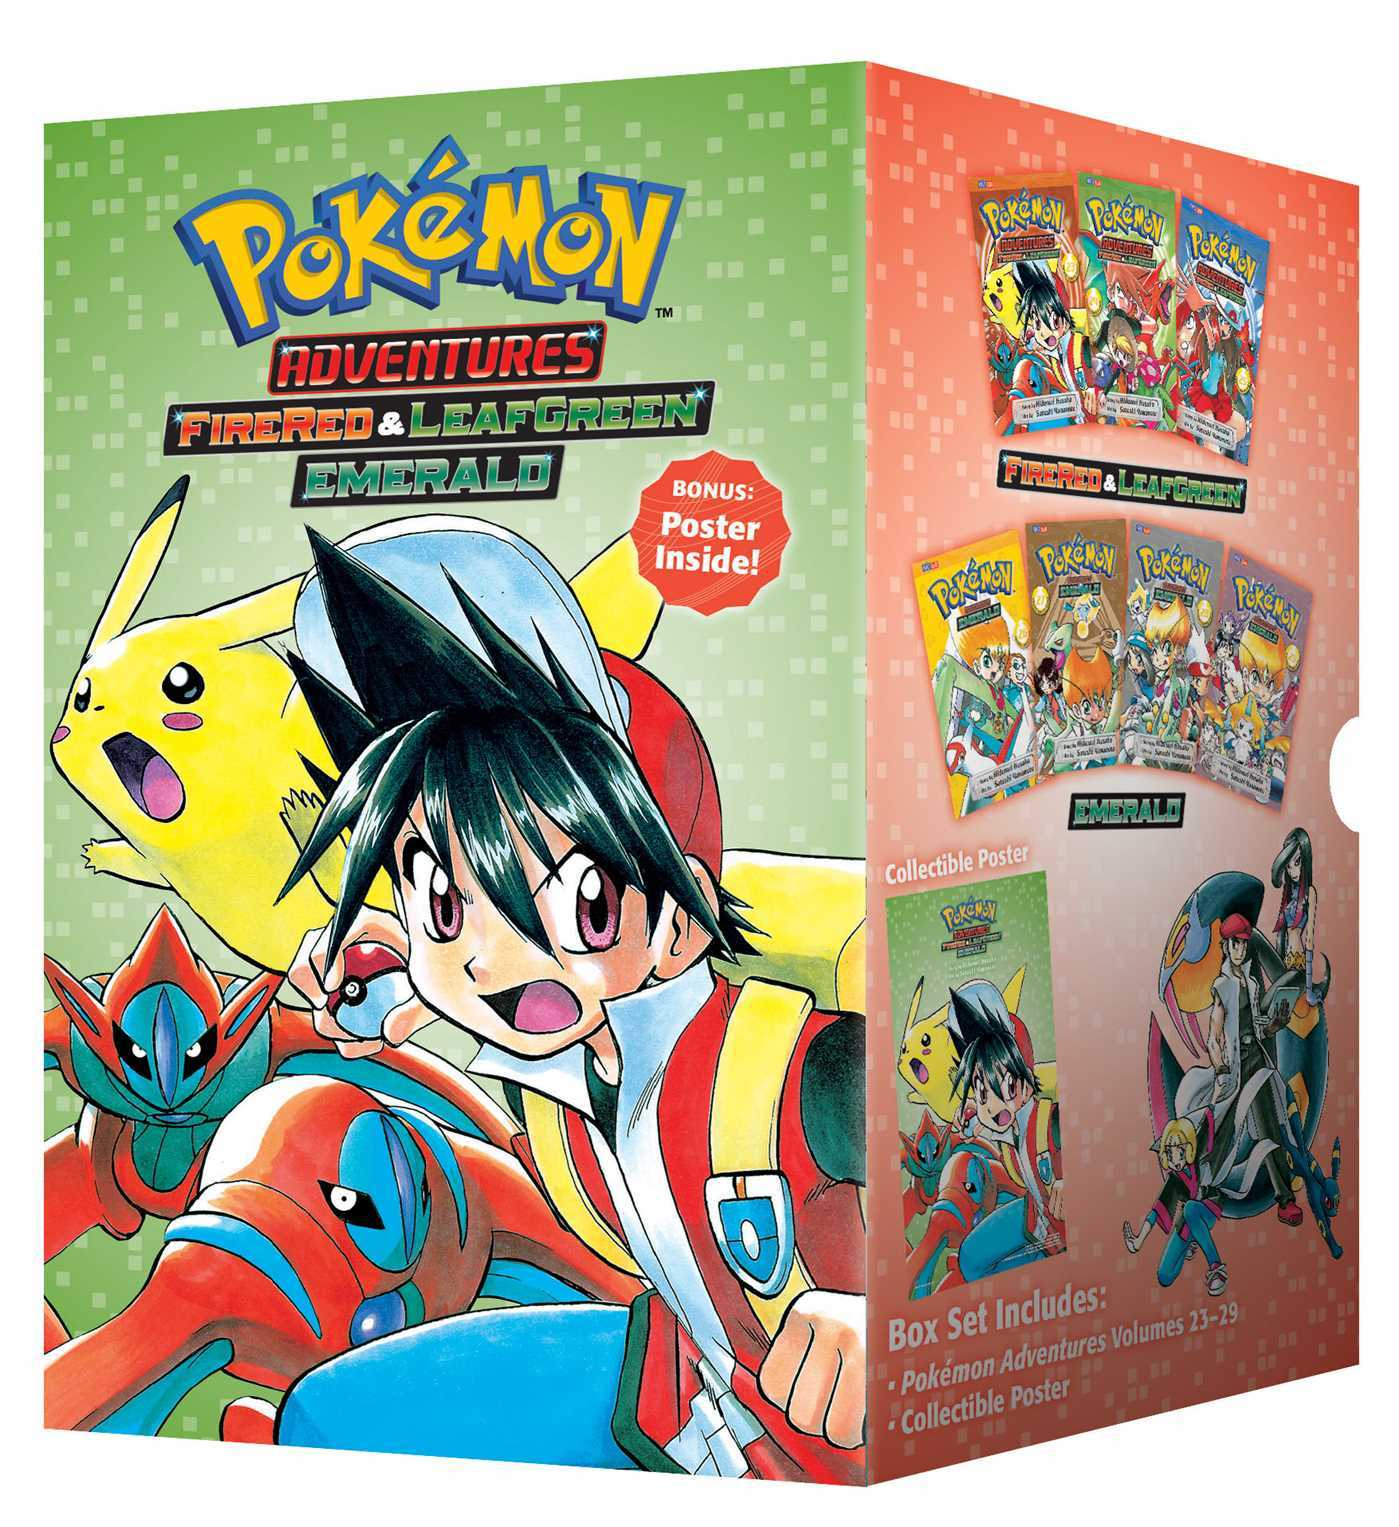 Pokémon Adventures Fire Red  Leaf Green / Emerald Box Set: Includes Volumes 23-29